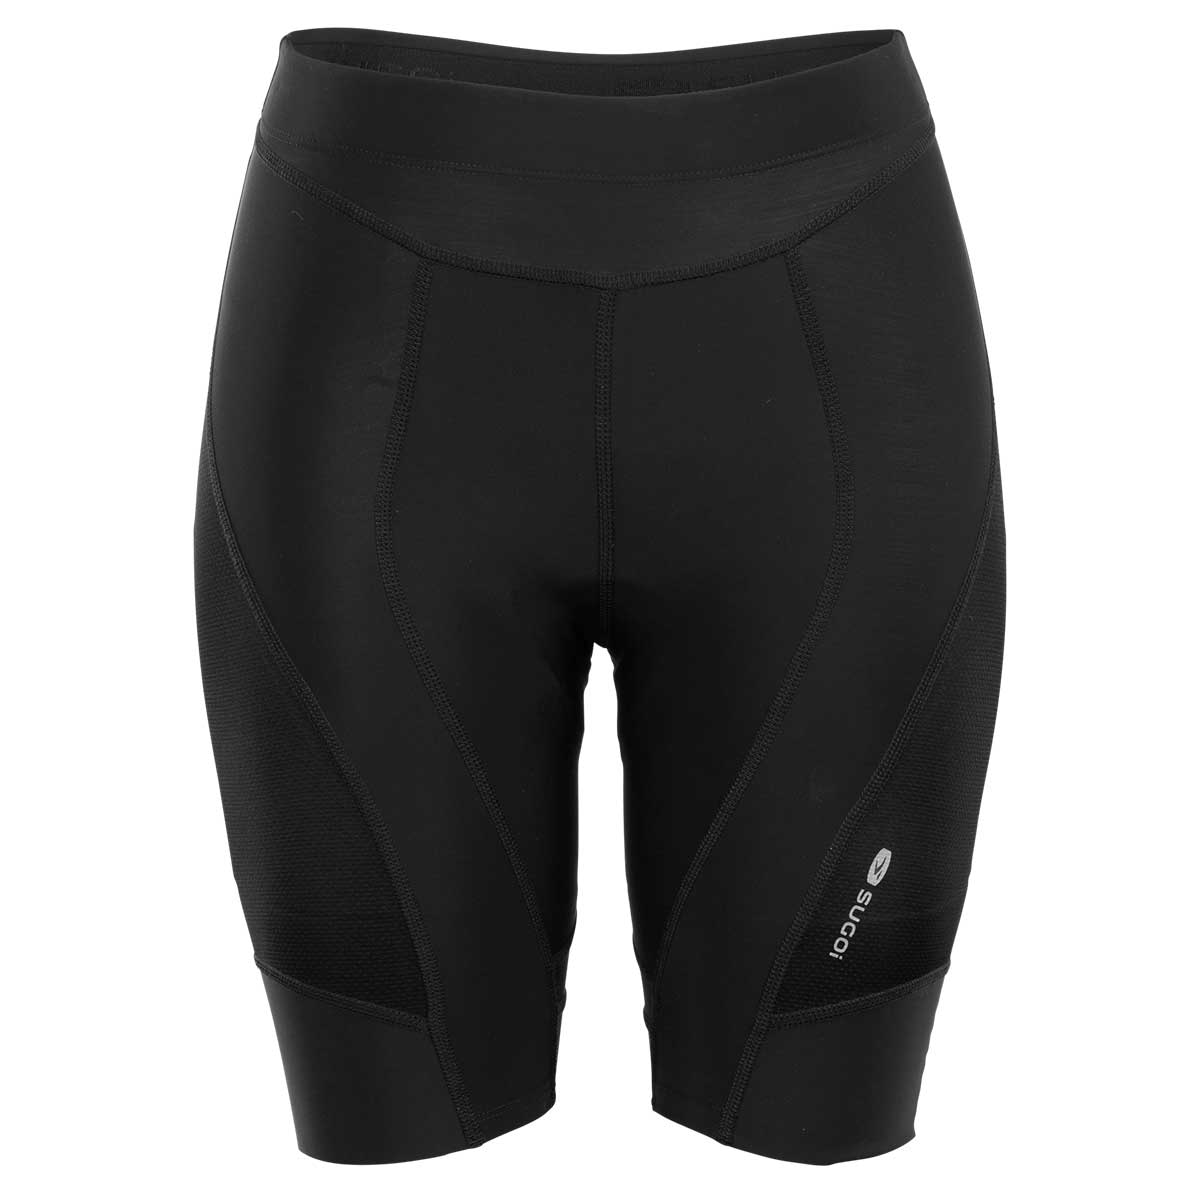 Sugoi women's RS Pro Bike Short in Black